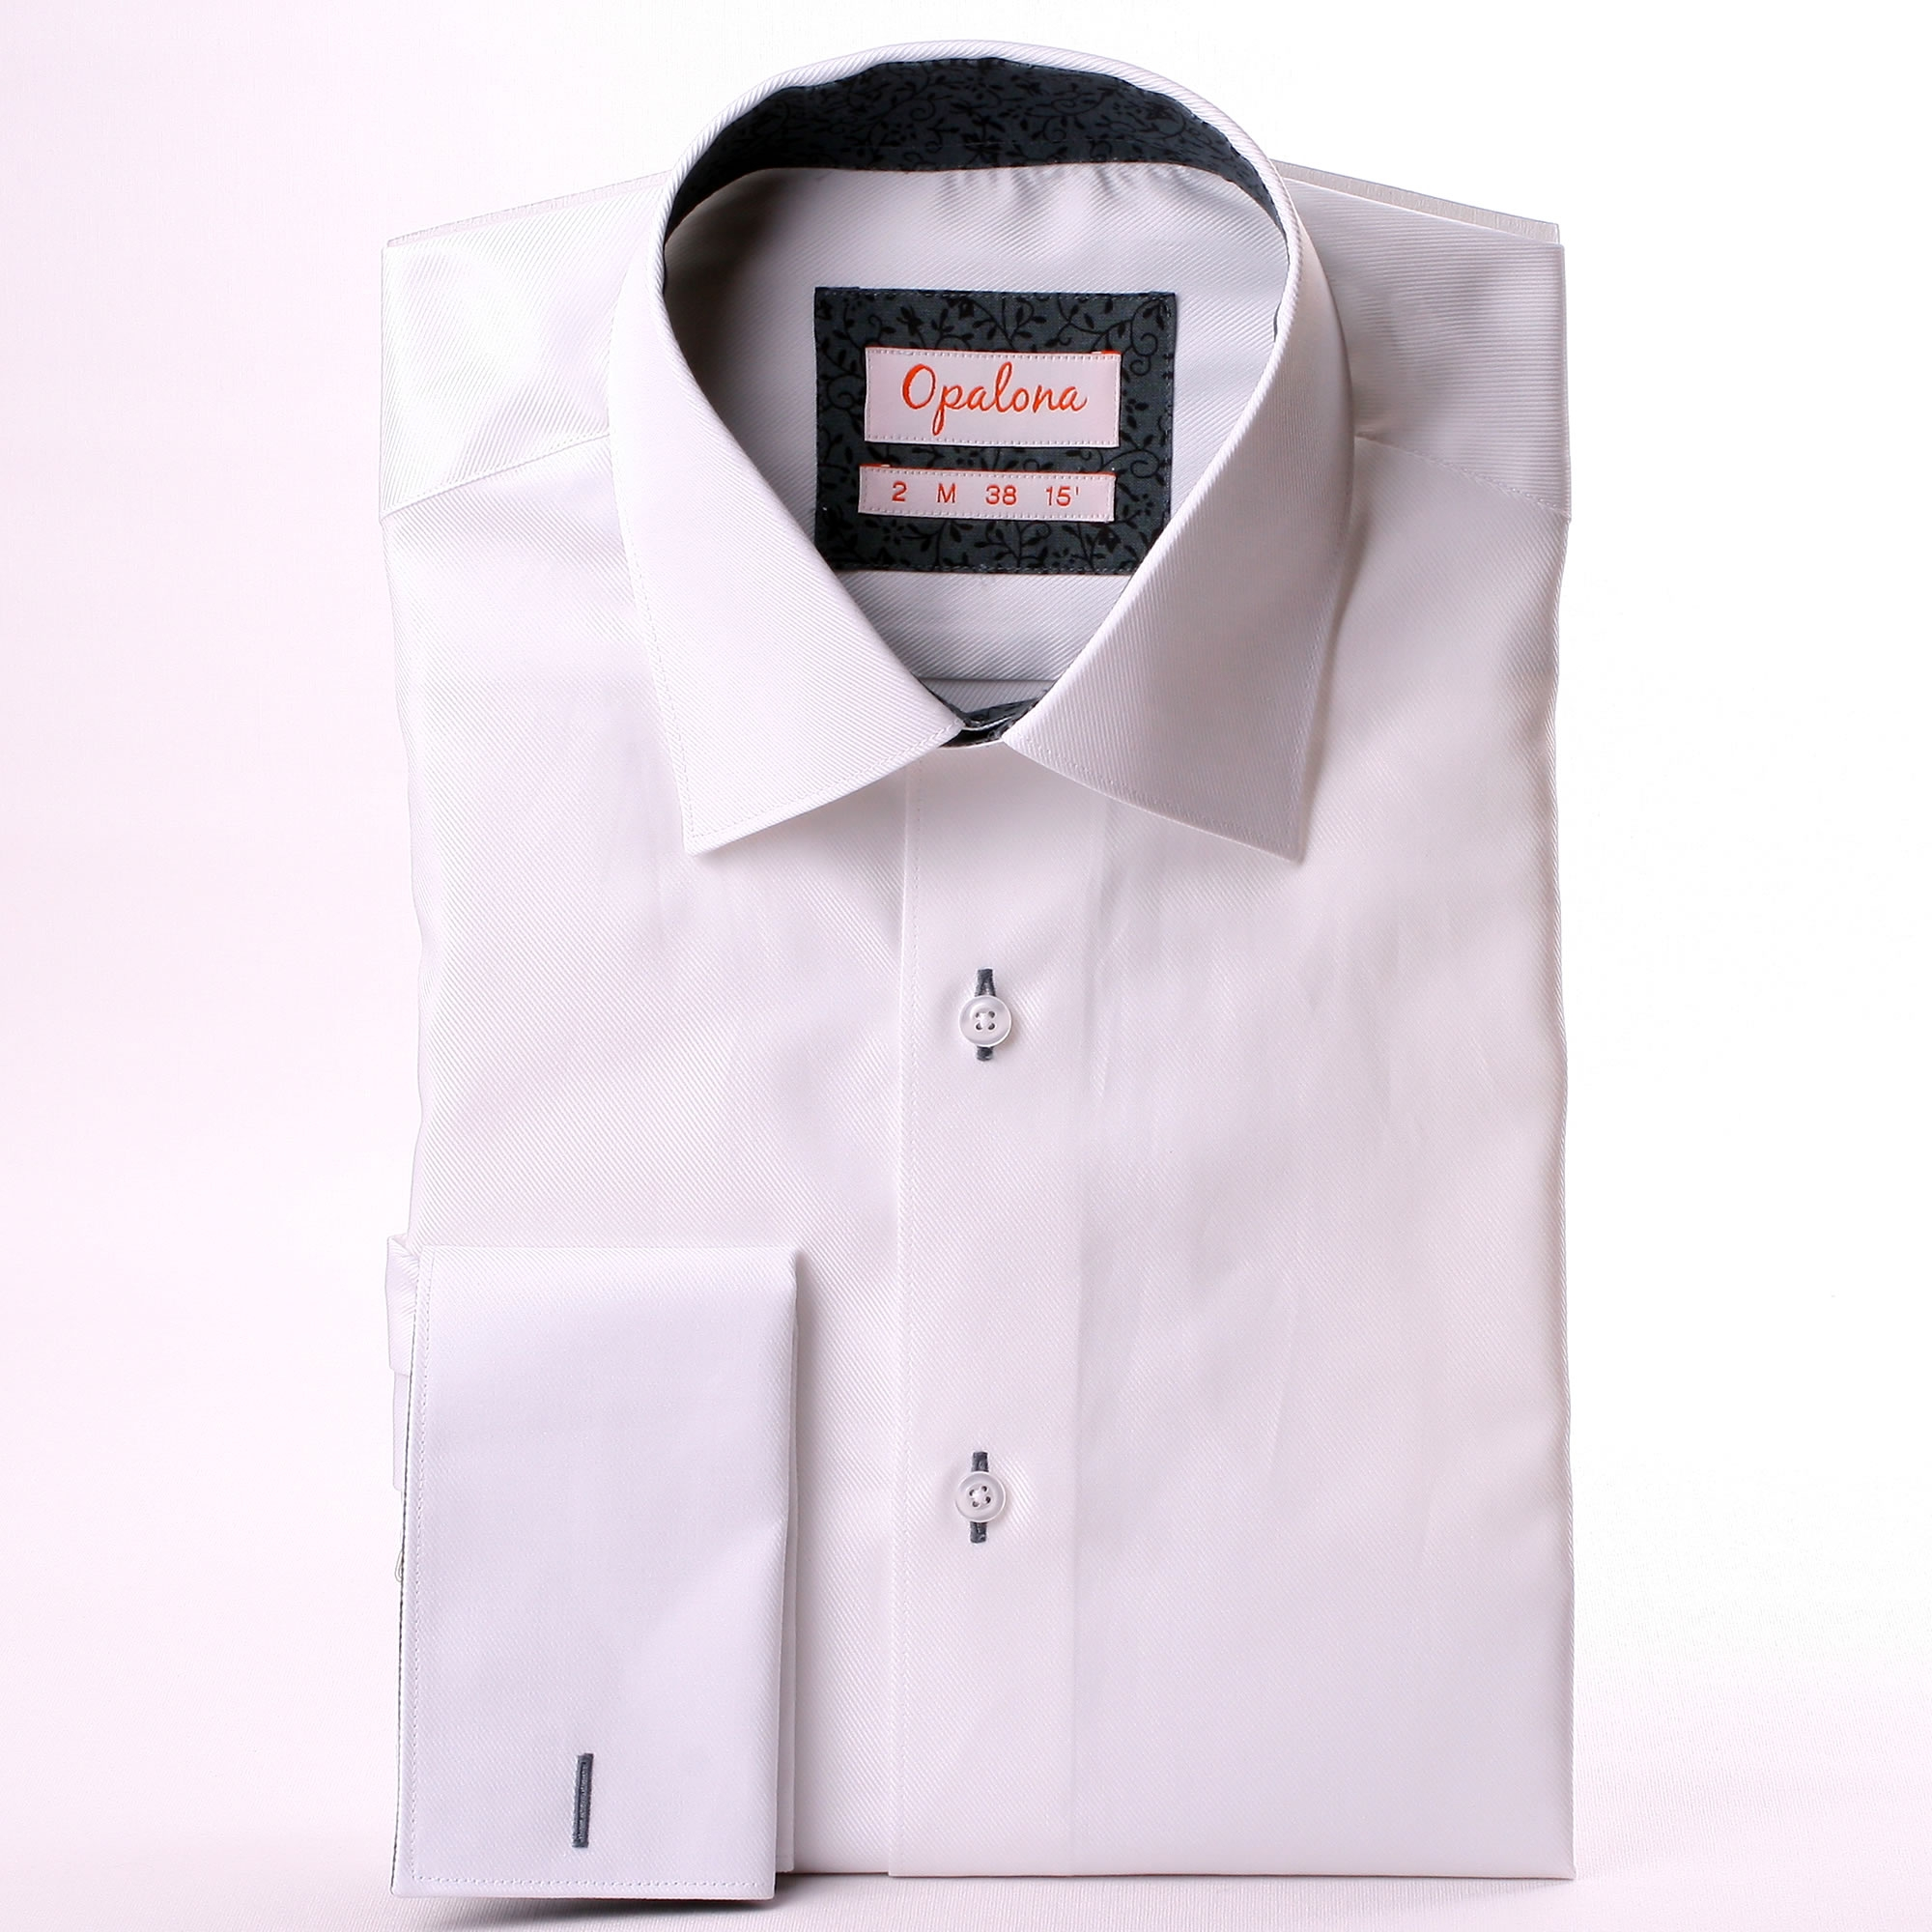 white french cuff shirt with grey patterns collar and cuffs